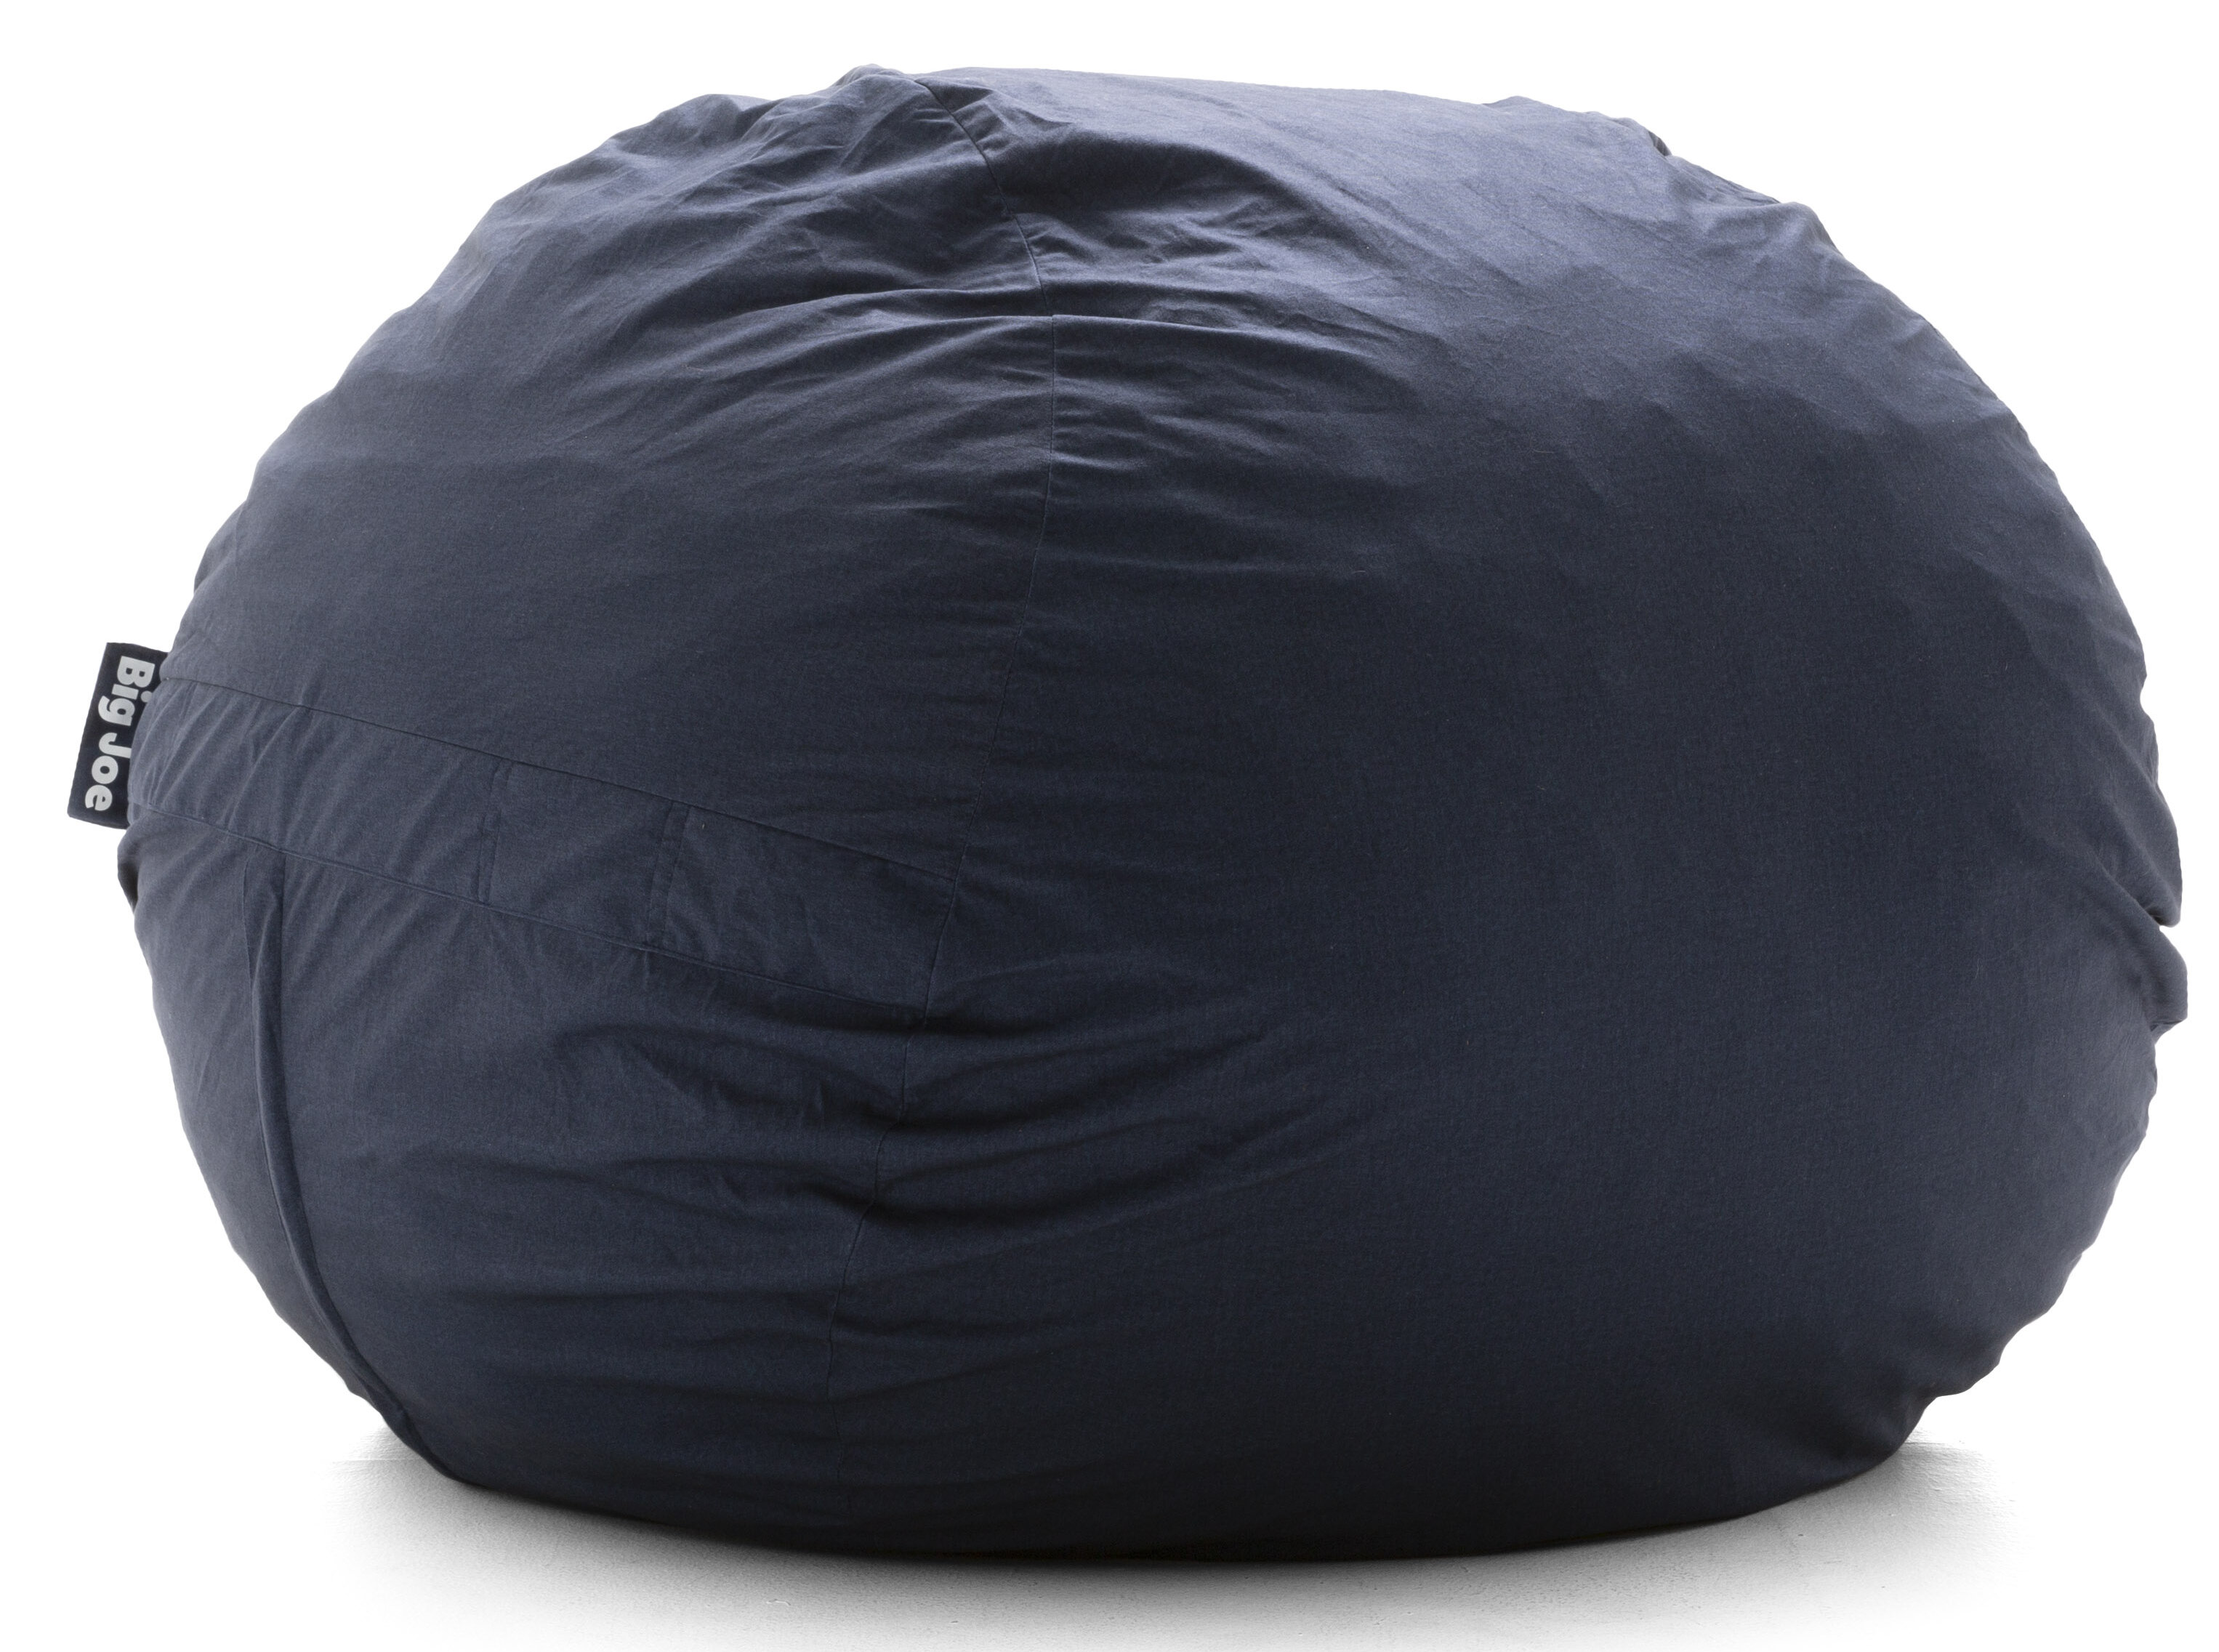 Big Joe Bean Bag Trend Bags